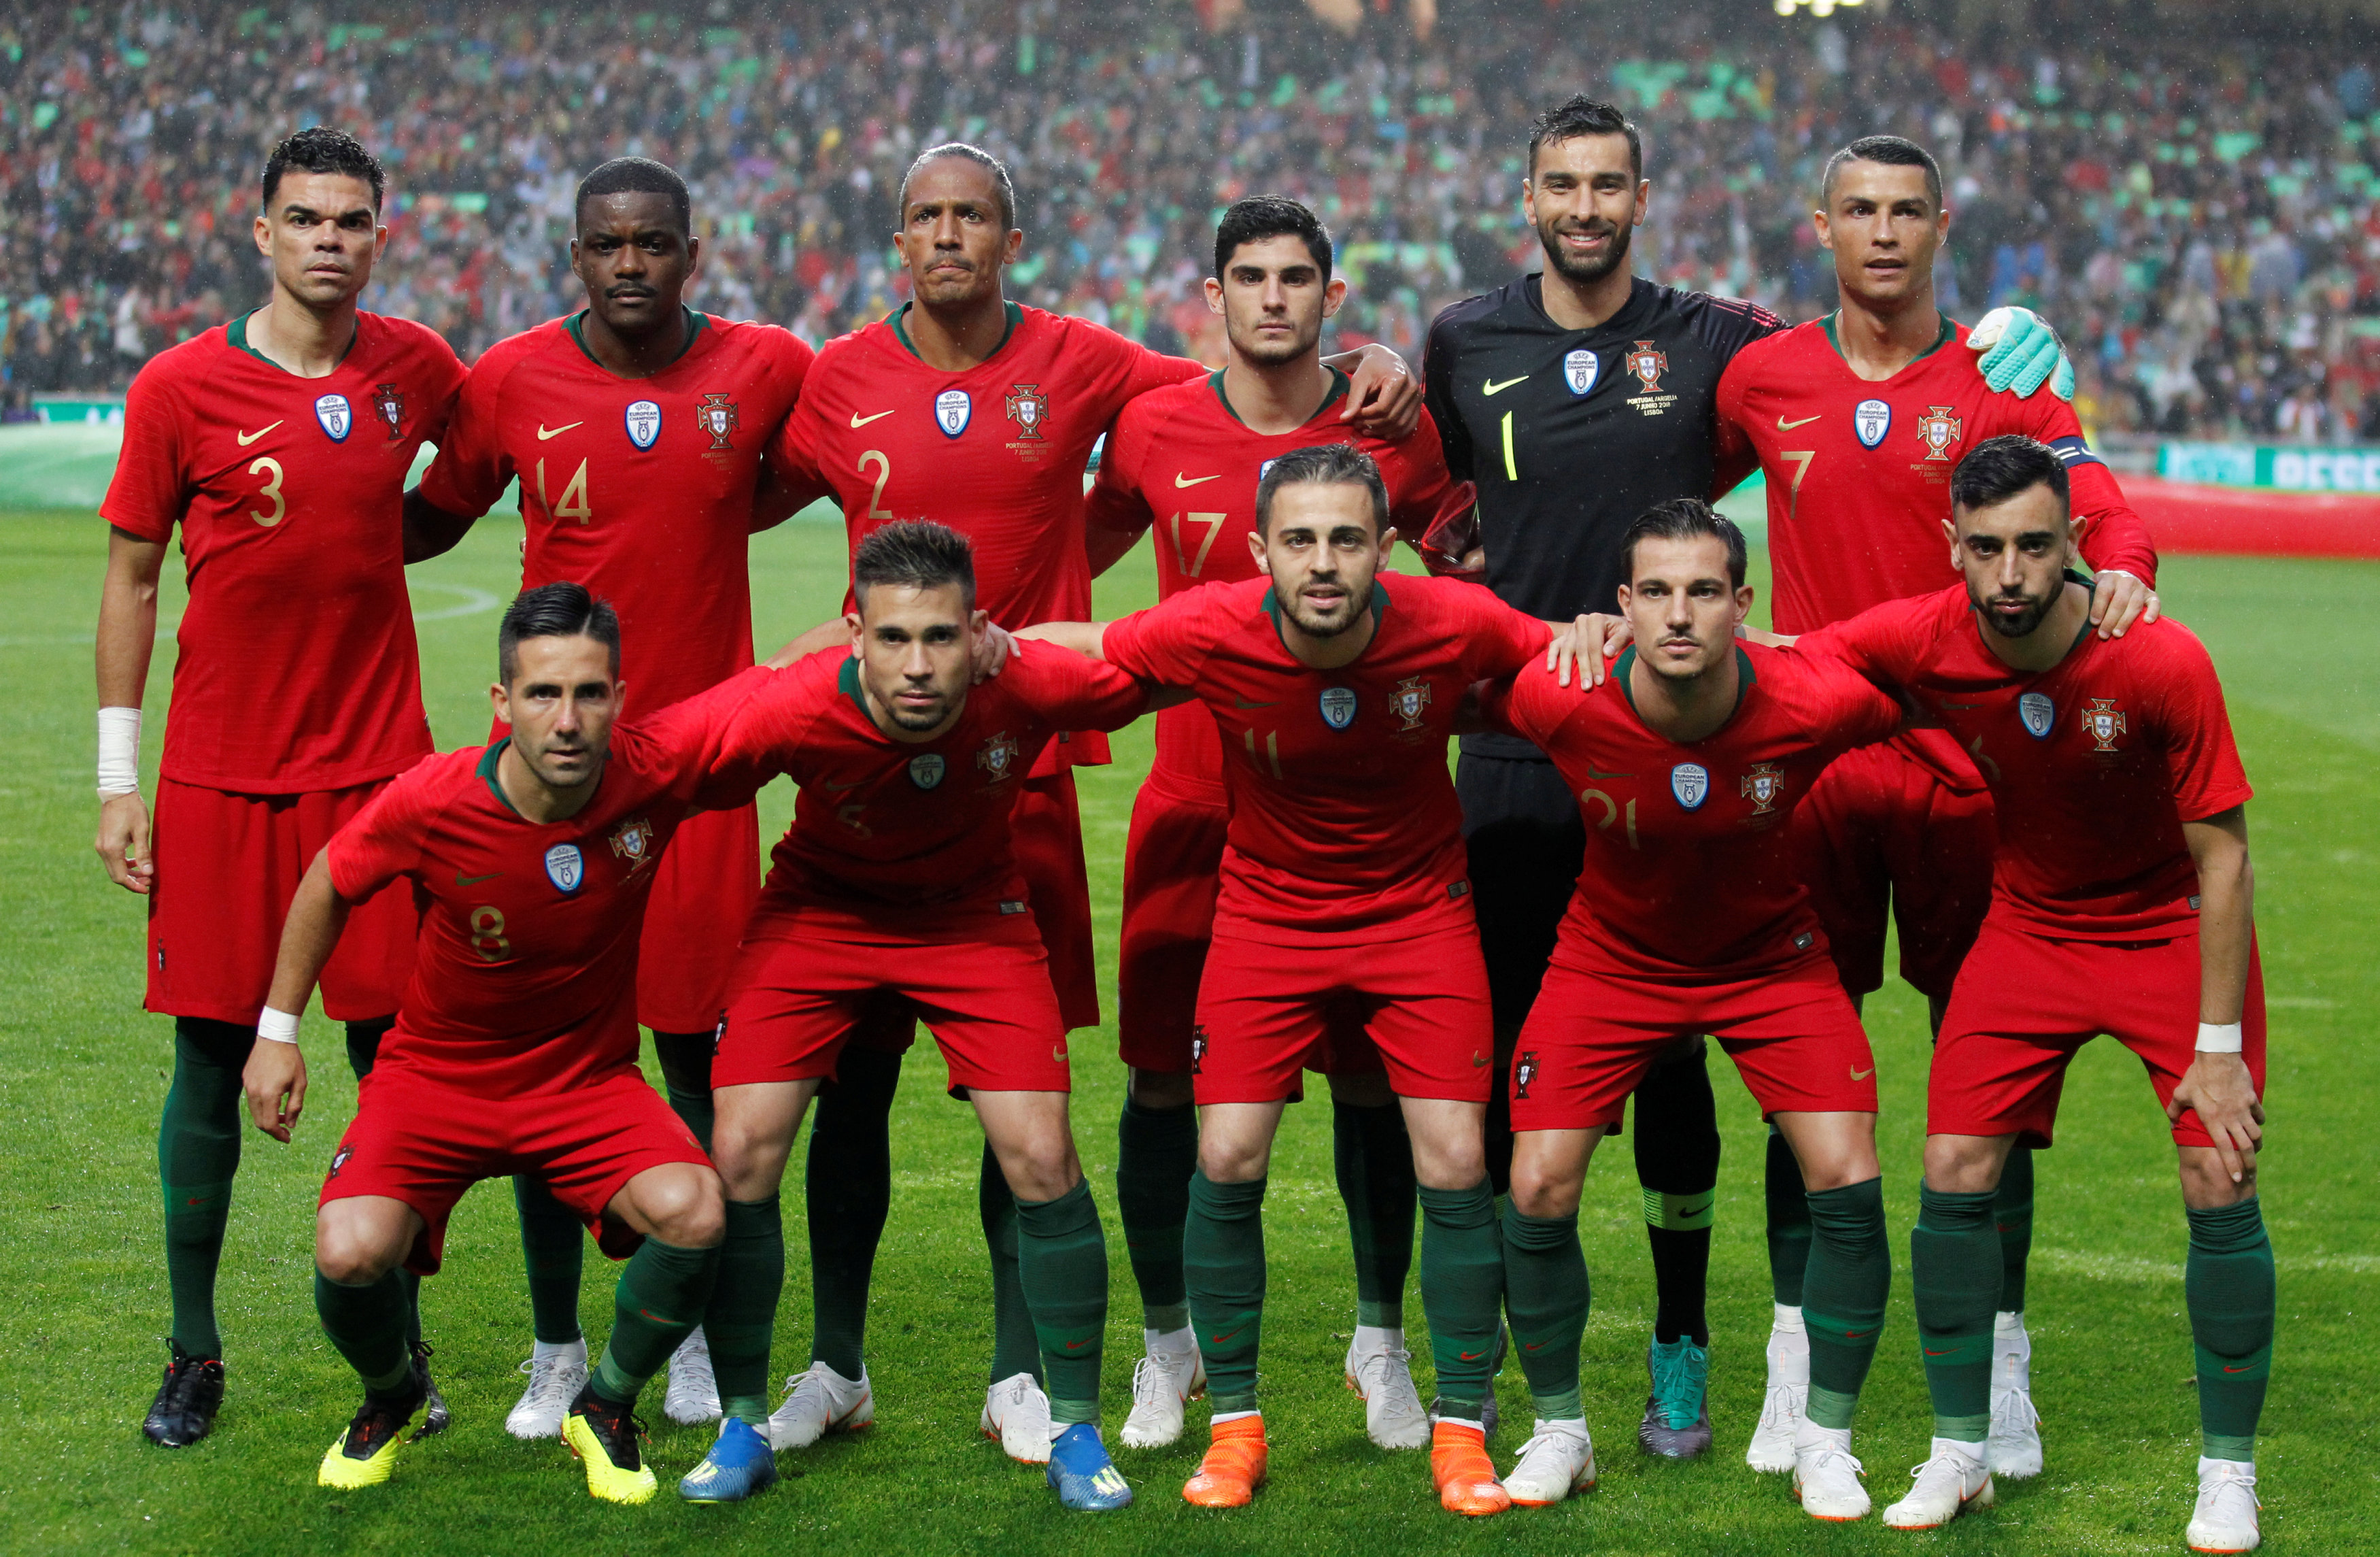 Portugal squad World Cup 2018